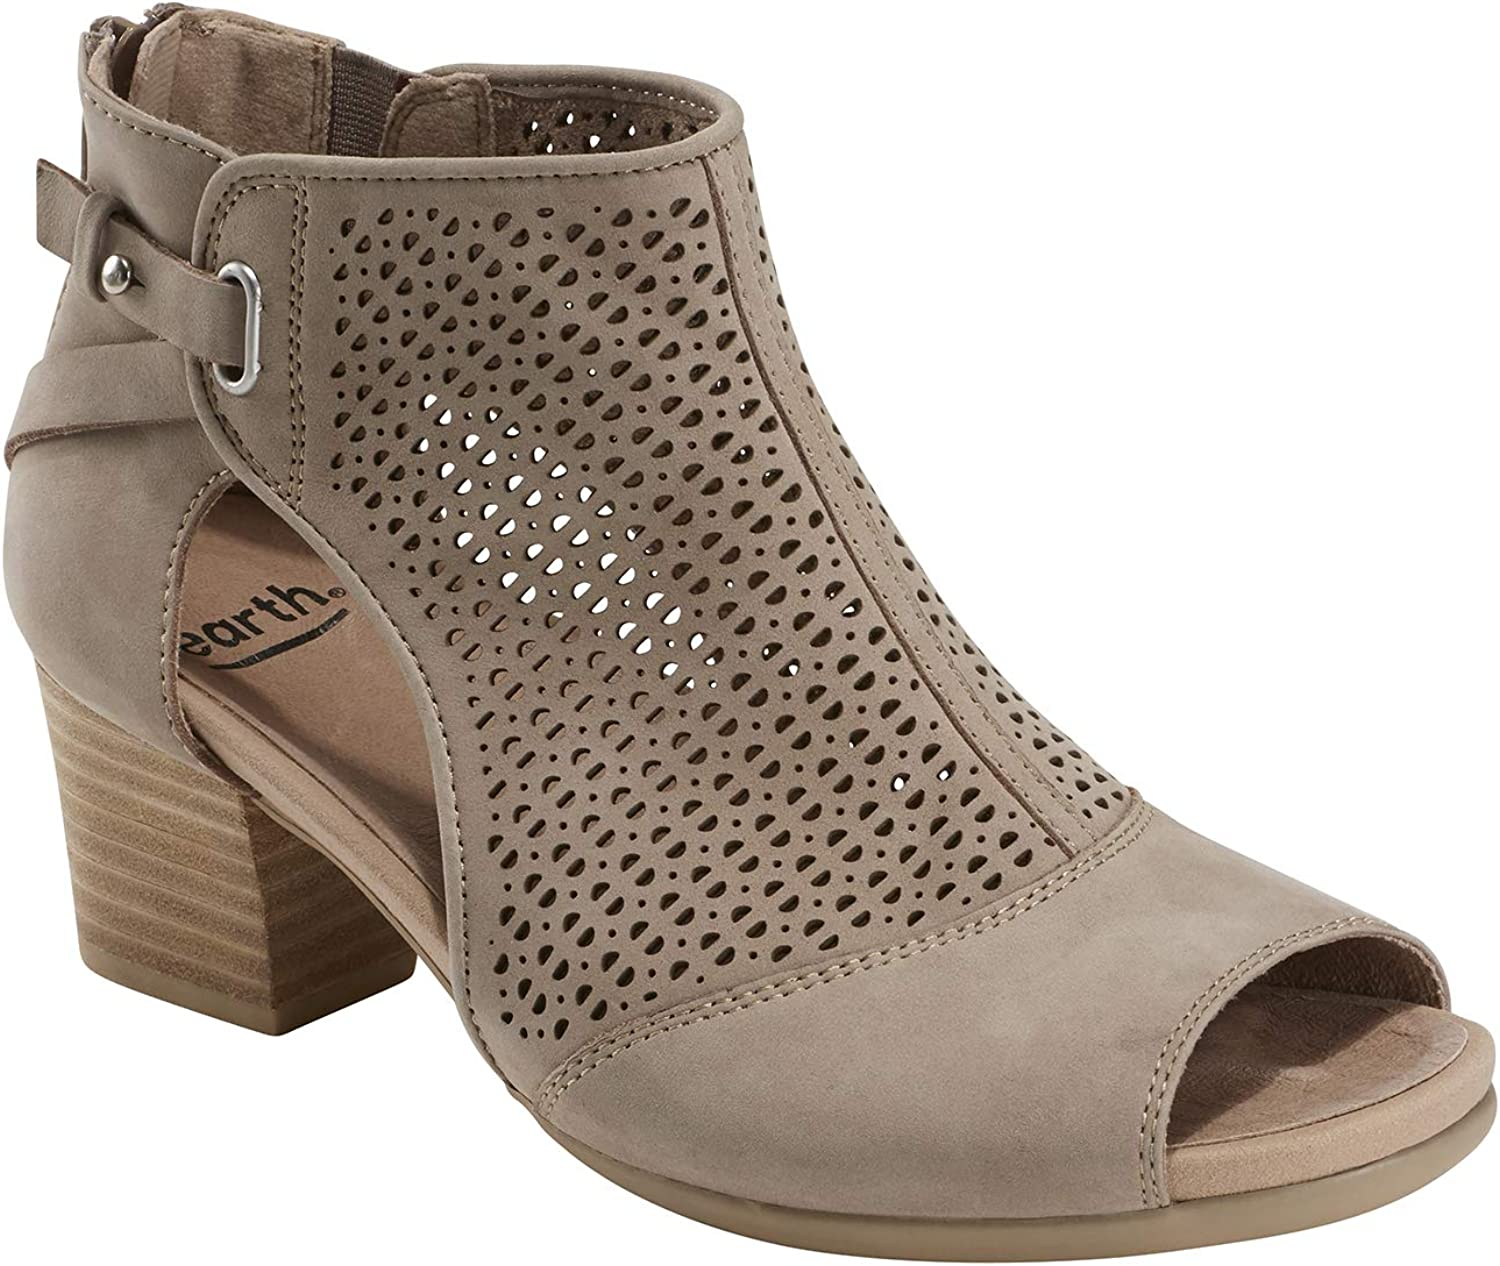 Earth Shoes Our Price reduction shop OFFers the best service Sahara Ivy